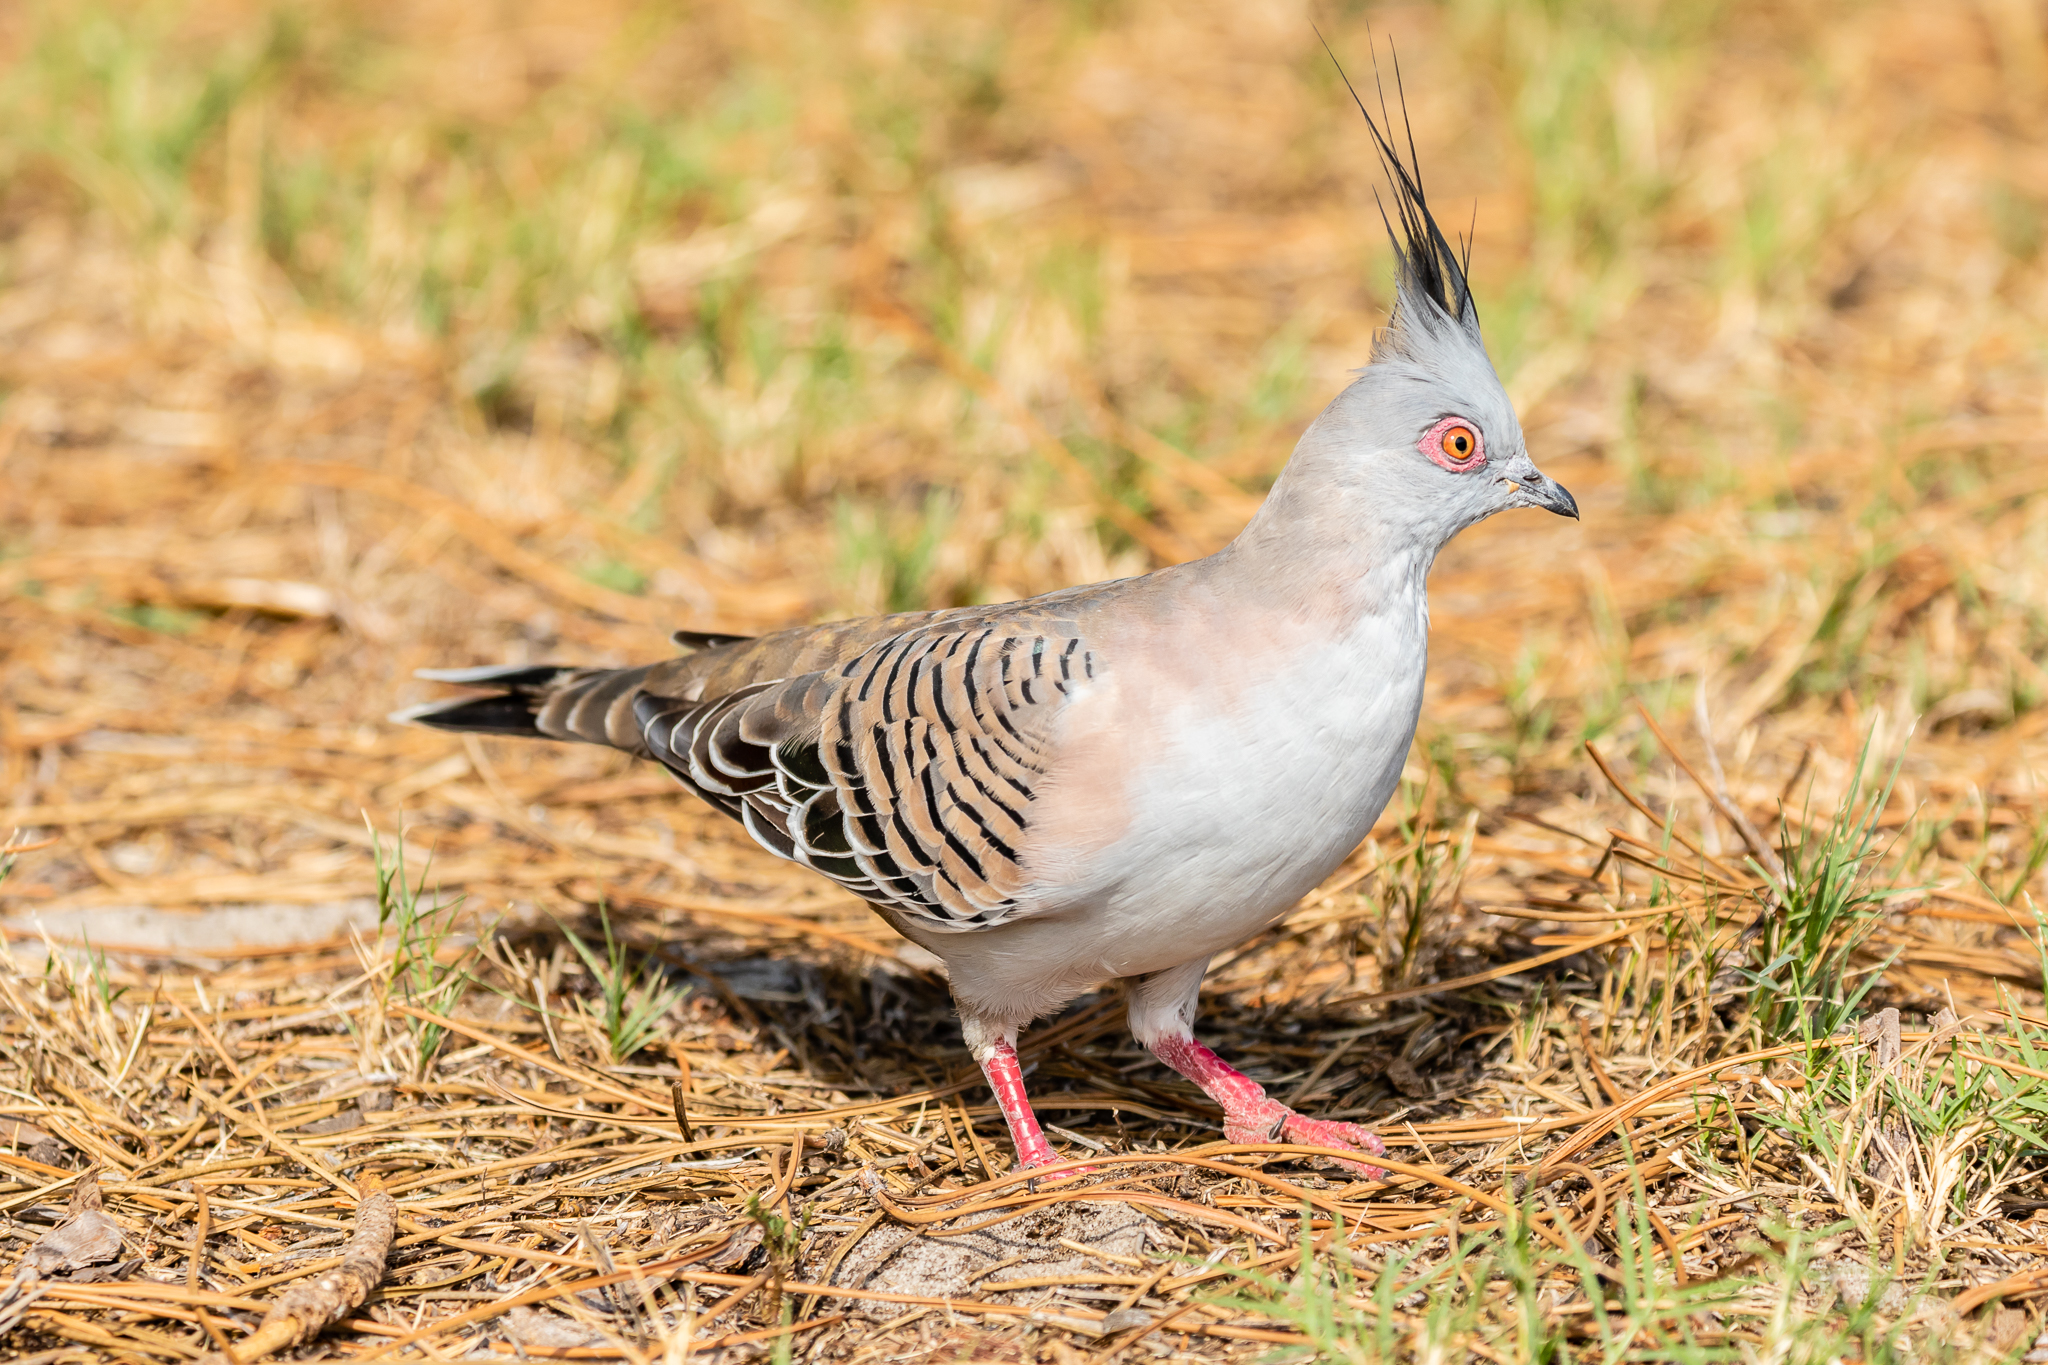 Another widespread bird is the Crested Pigeon (35 cm) seen in woodland, on farms and often in the city. They are seed eaters feeding on the ground, sometimes taking insects when available.